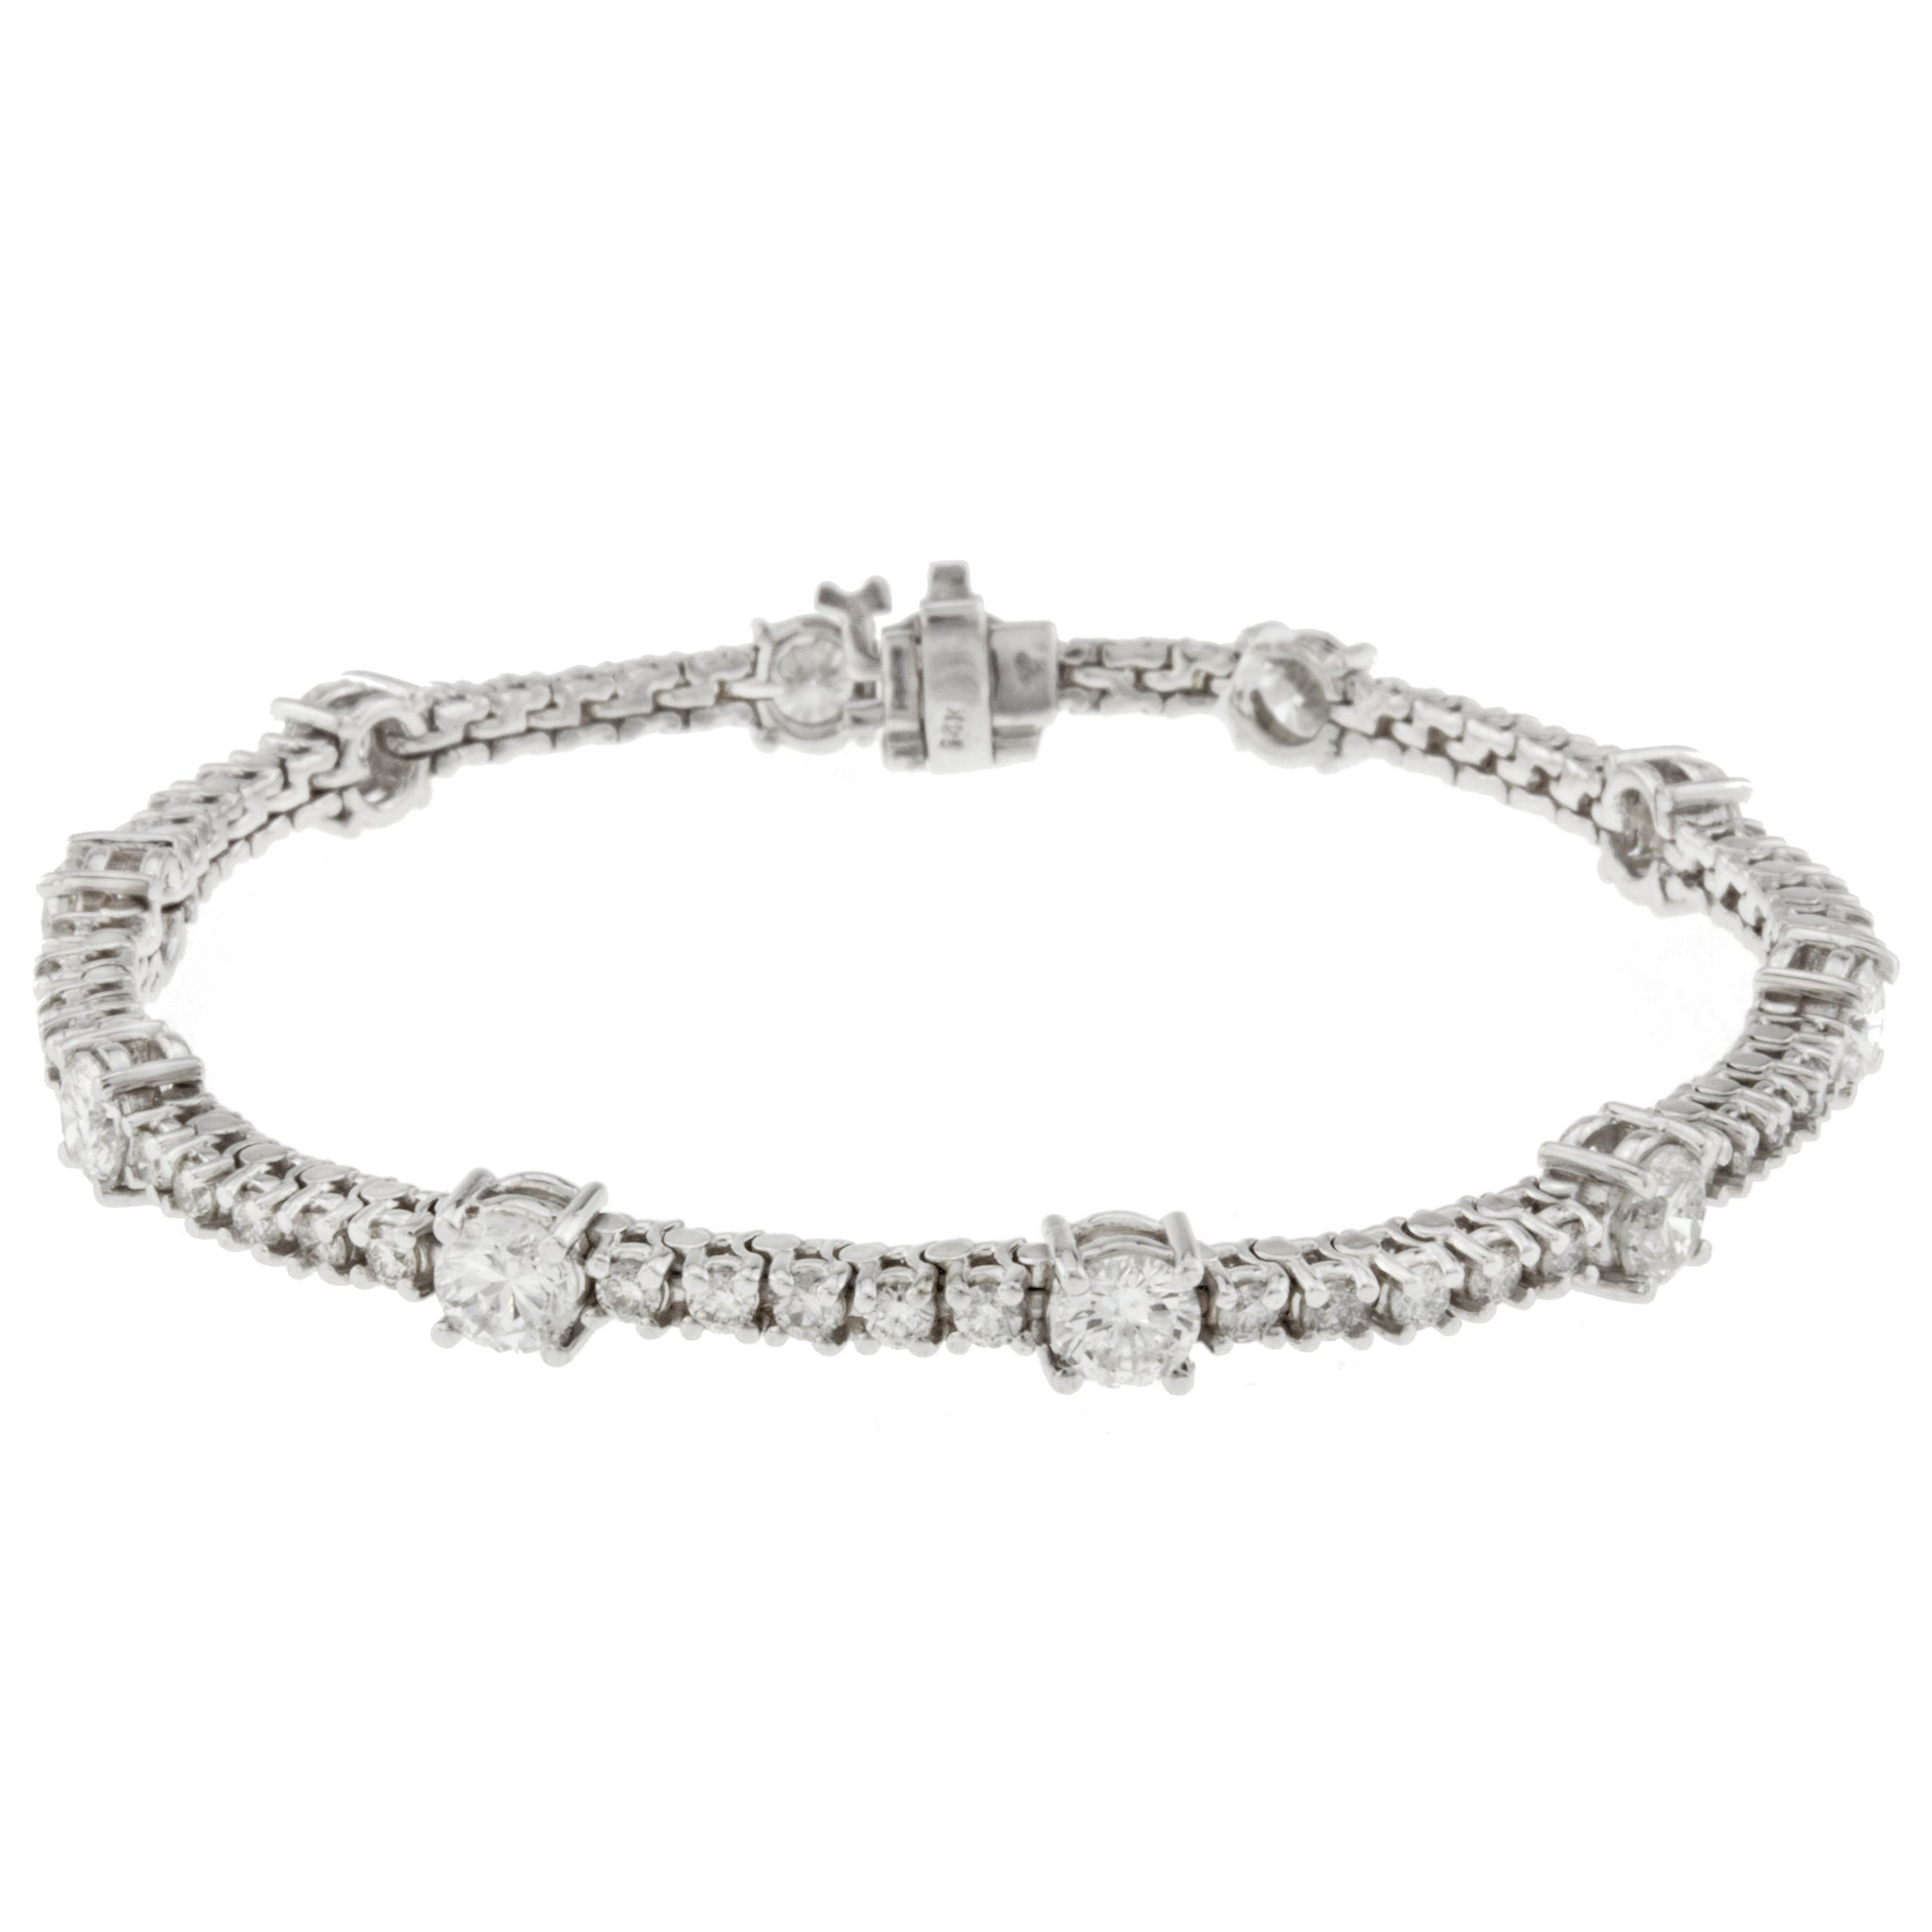 14K White Gold Diamond Tennis Braclet With 5.97CT Of Round Diamonds